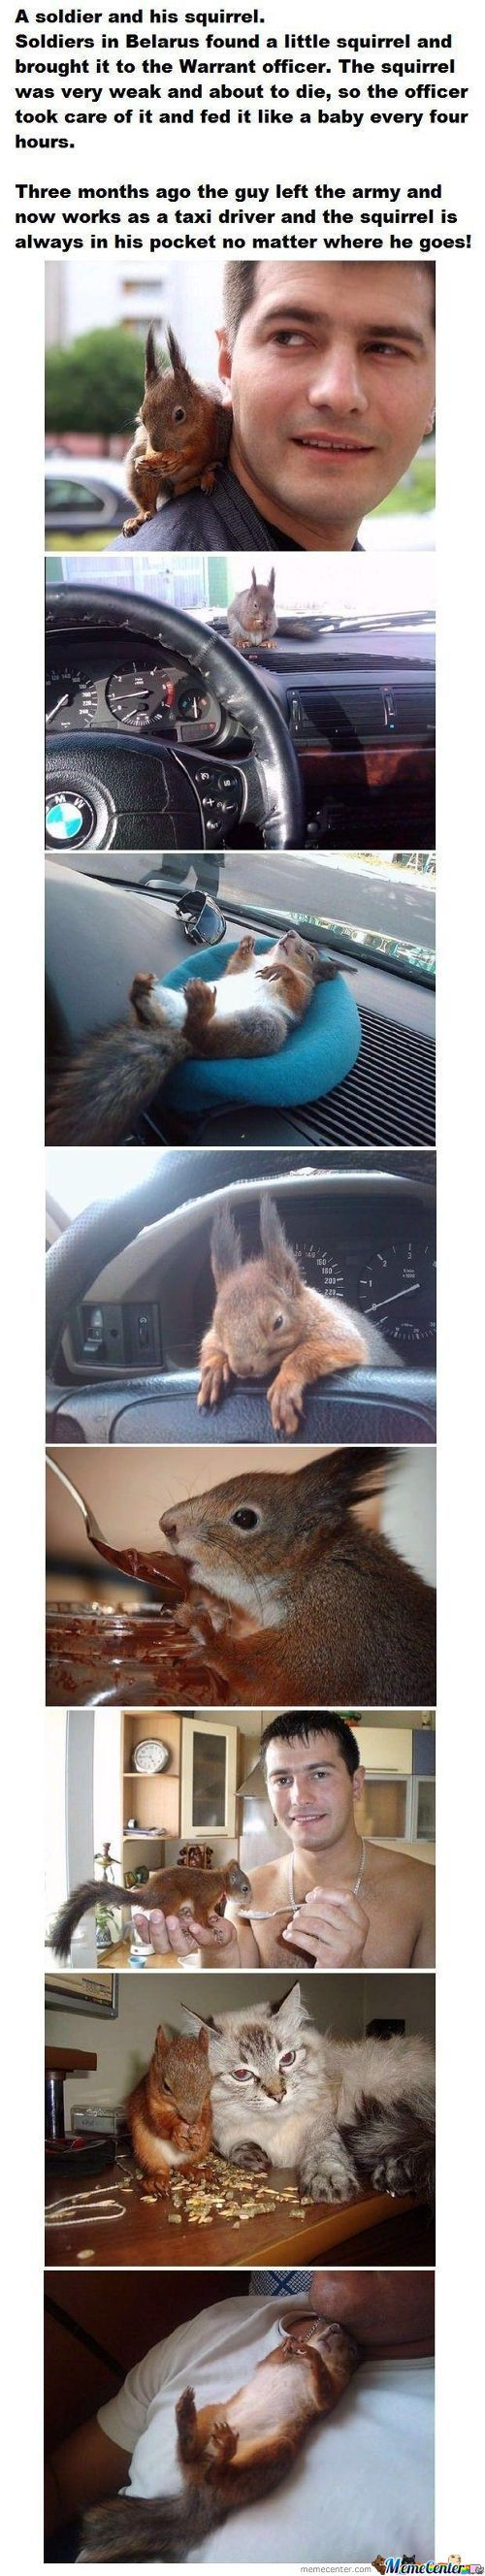 A Combine Of Hot Soldier And Cute Squirrel